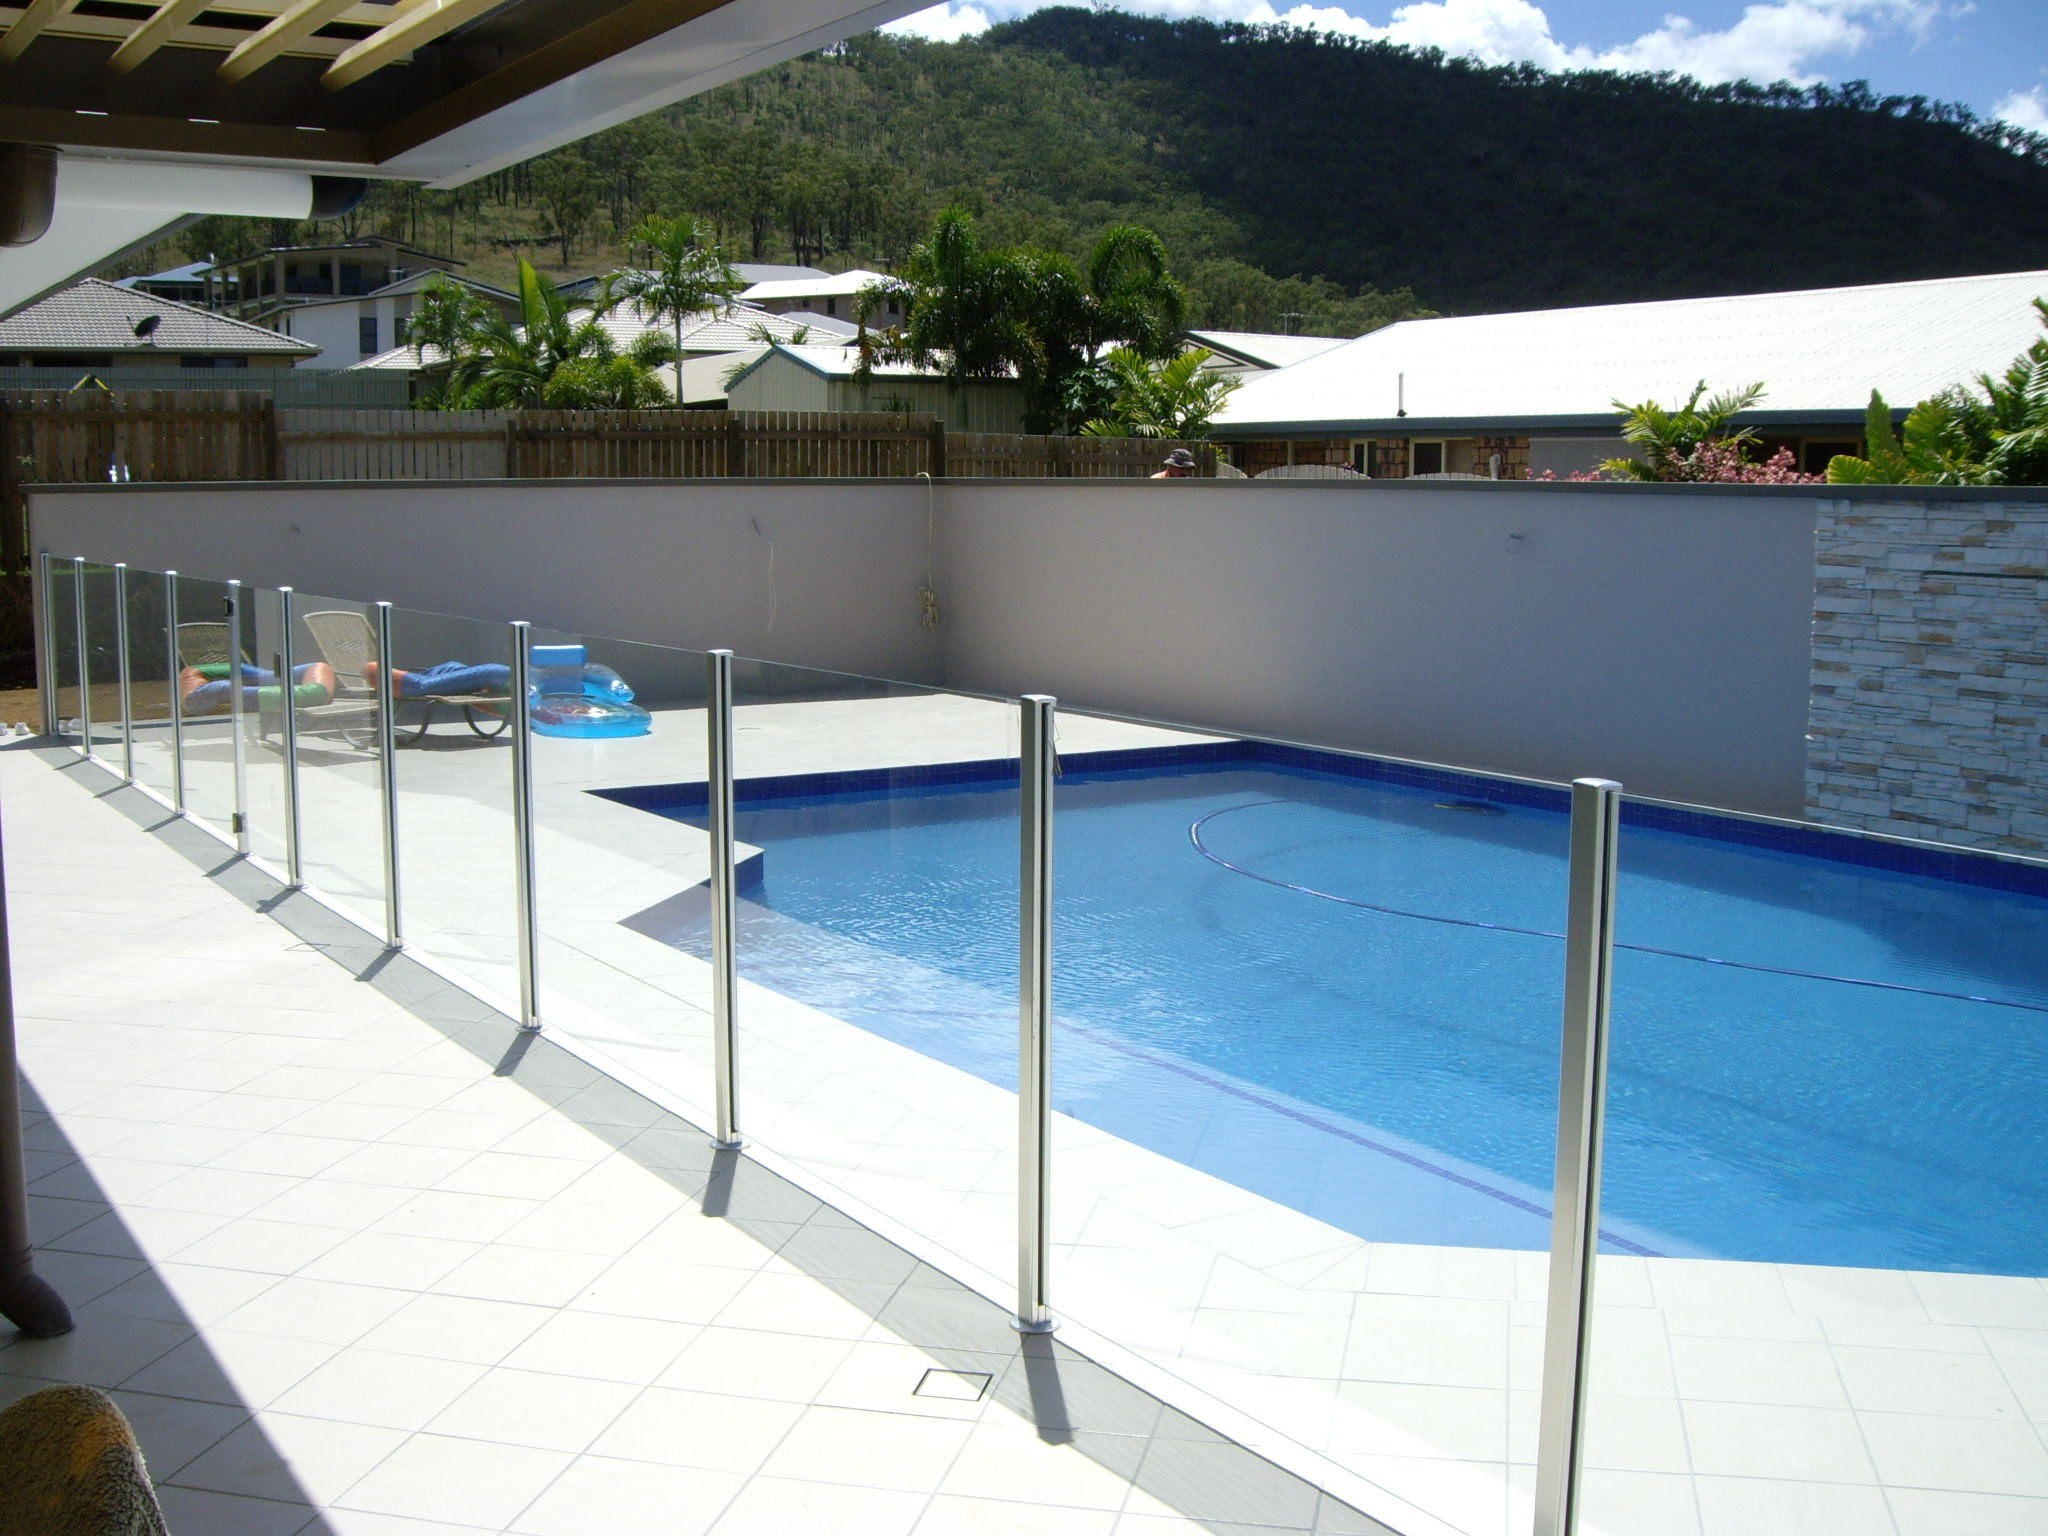 Pool fencing multifencing newcastle for Nsw government swimming pool register